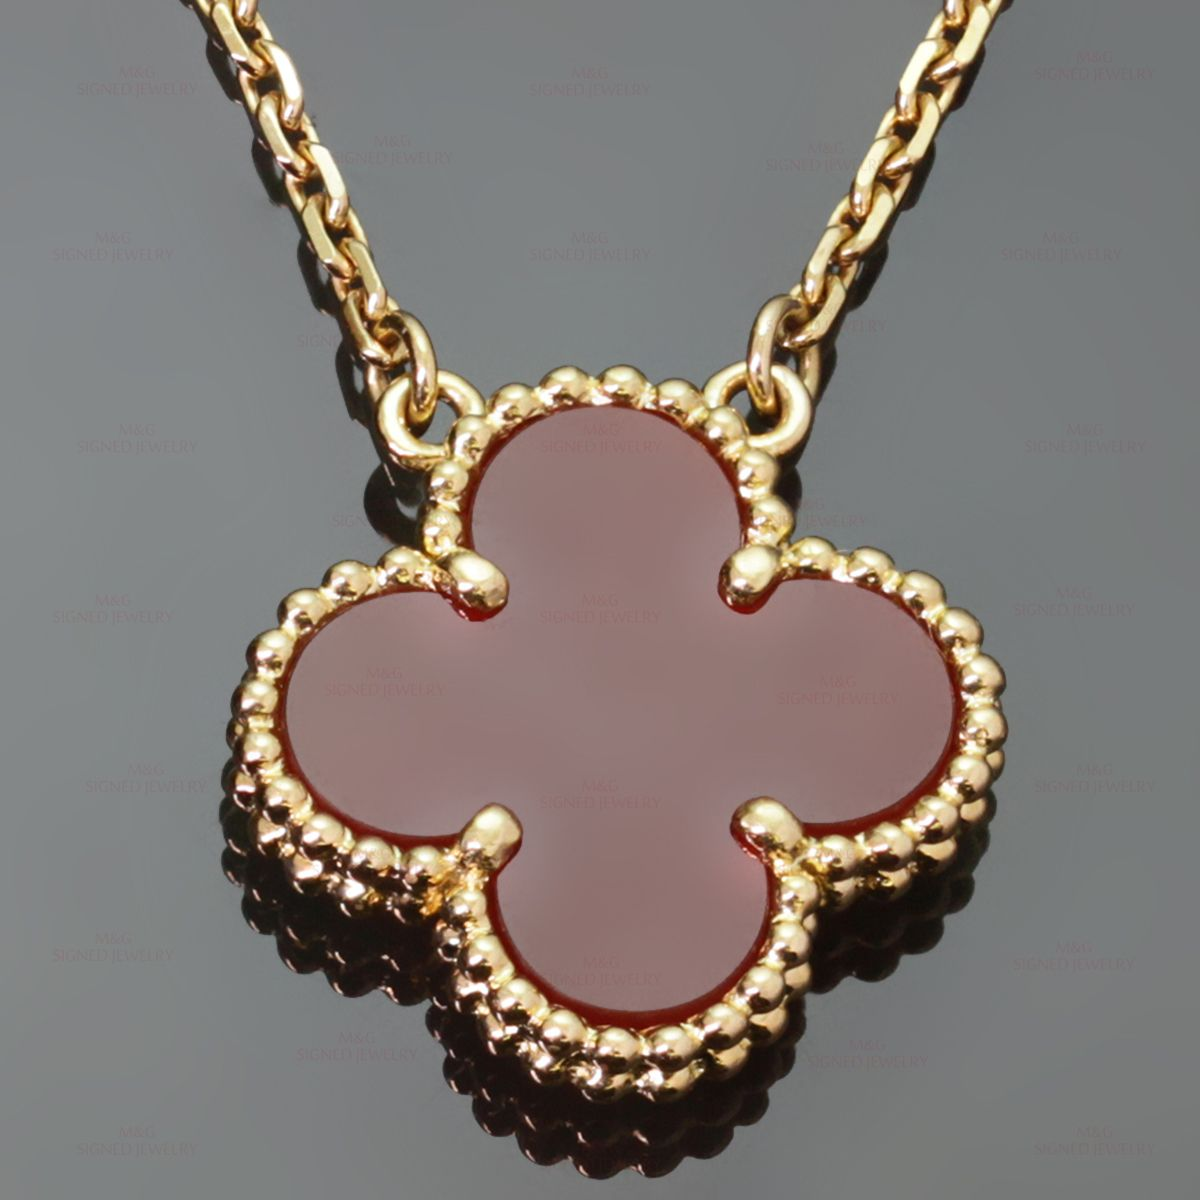 jewelry cleef us collections alhambra van arpels pendant view detail en sweet